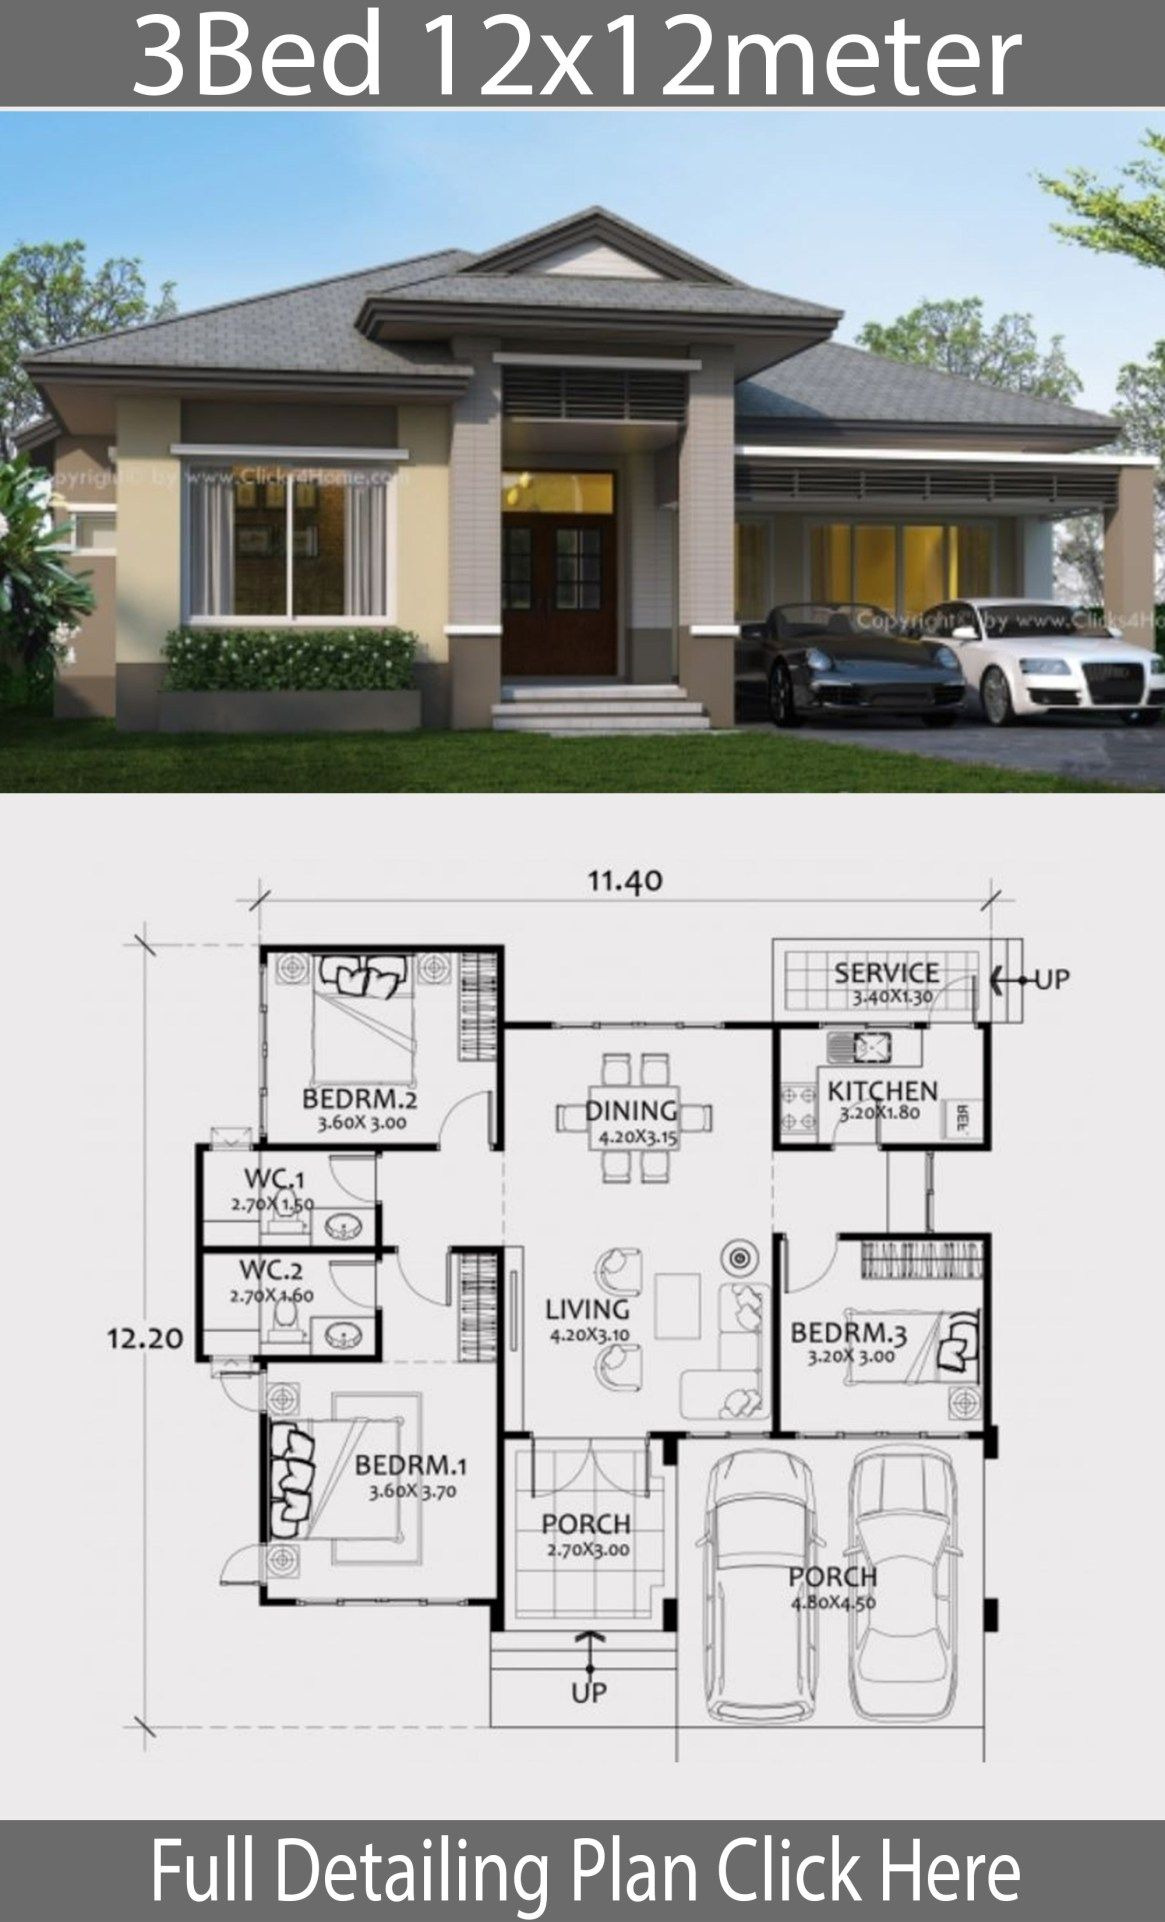 3 Bedroom House Design Lovely Home Design Plan 12x12m with 3 Bedrooms